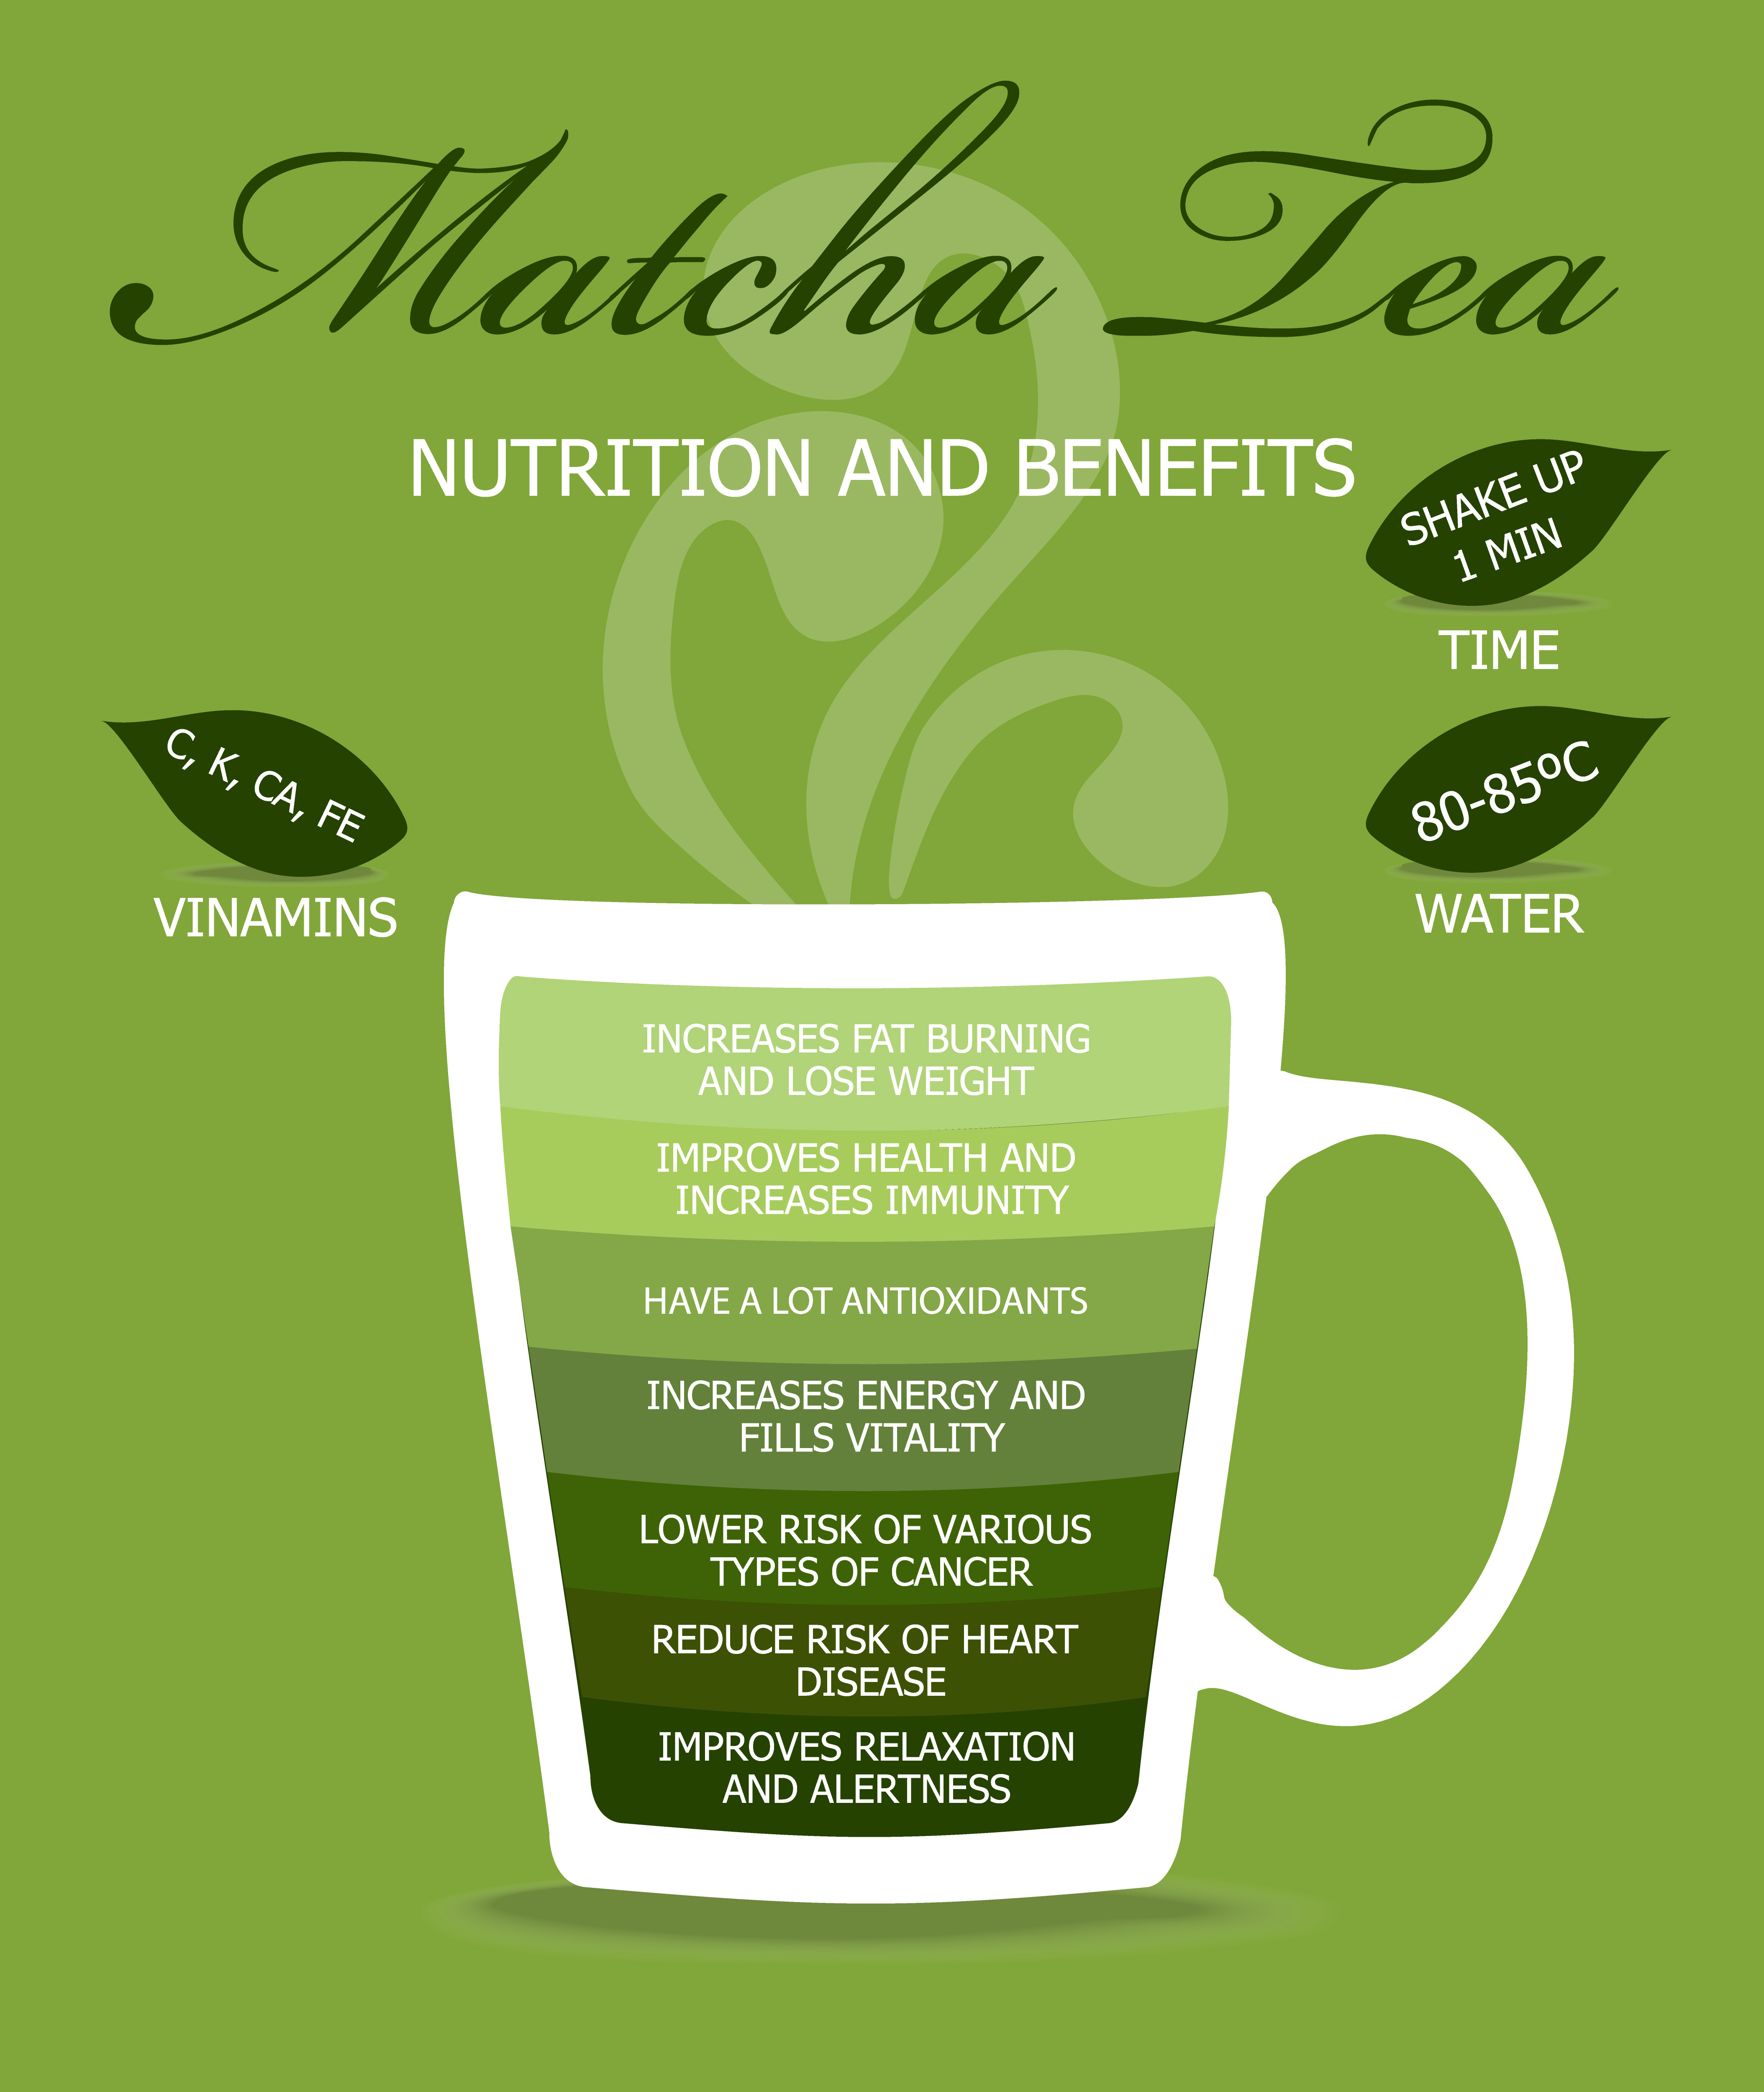 Benefits of matcha in nutshell